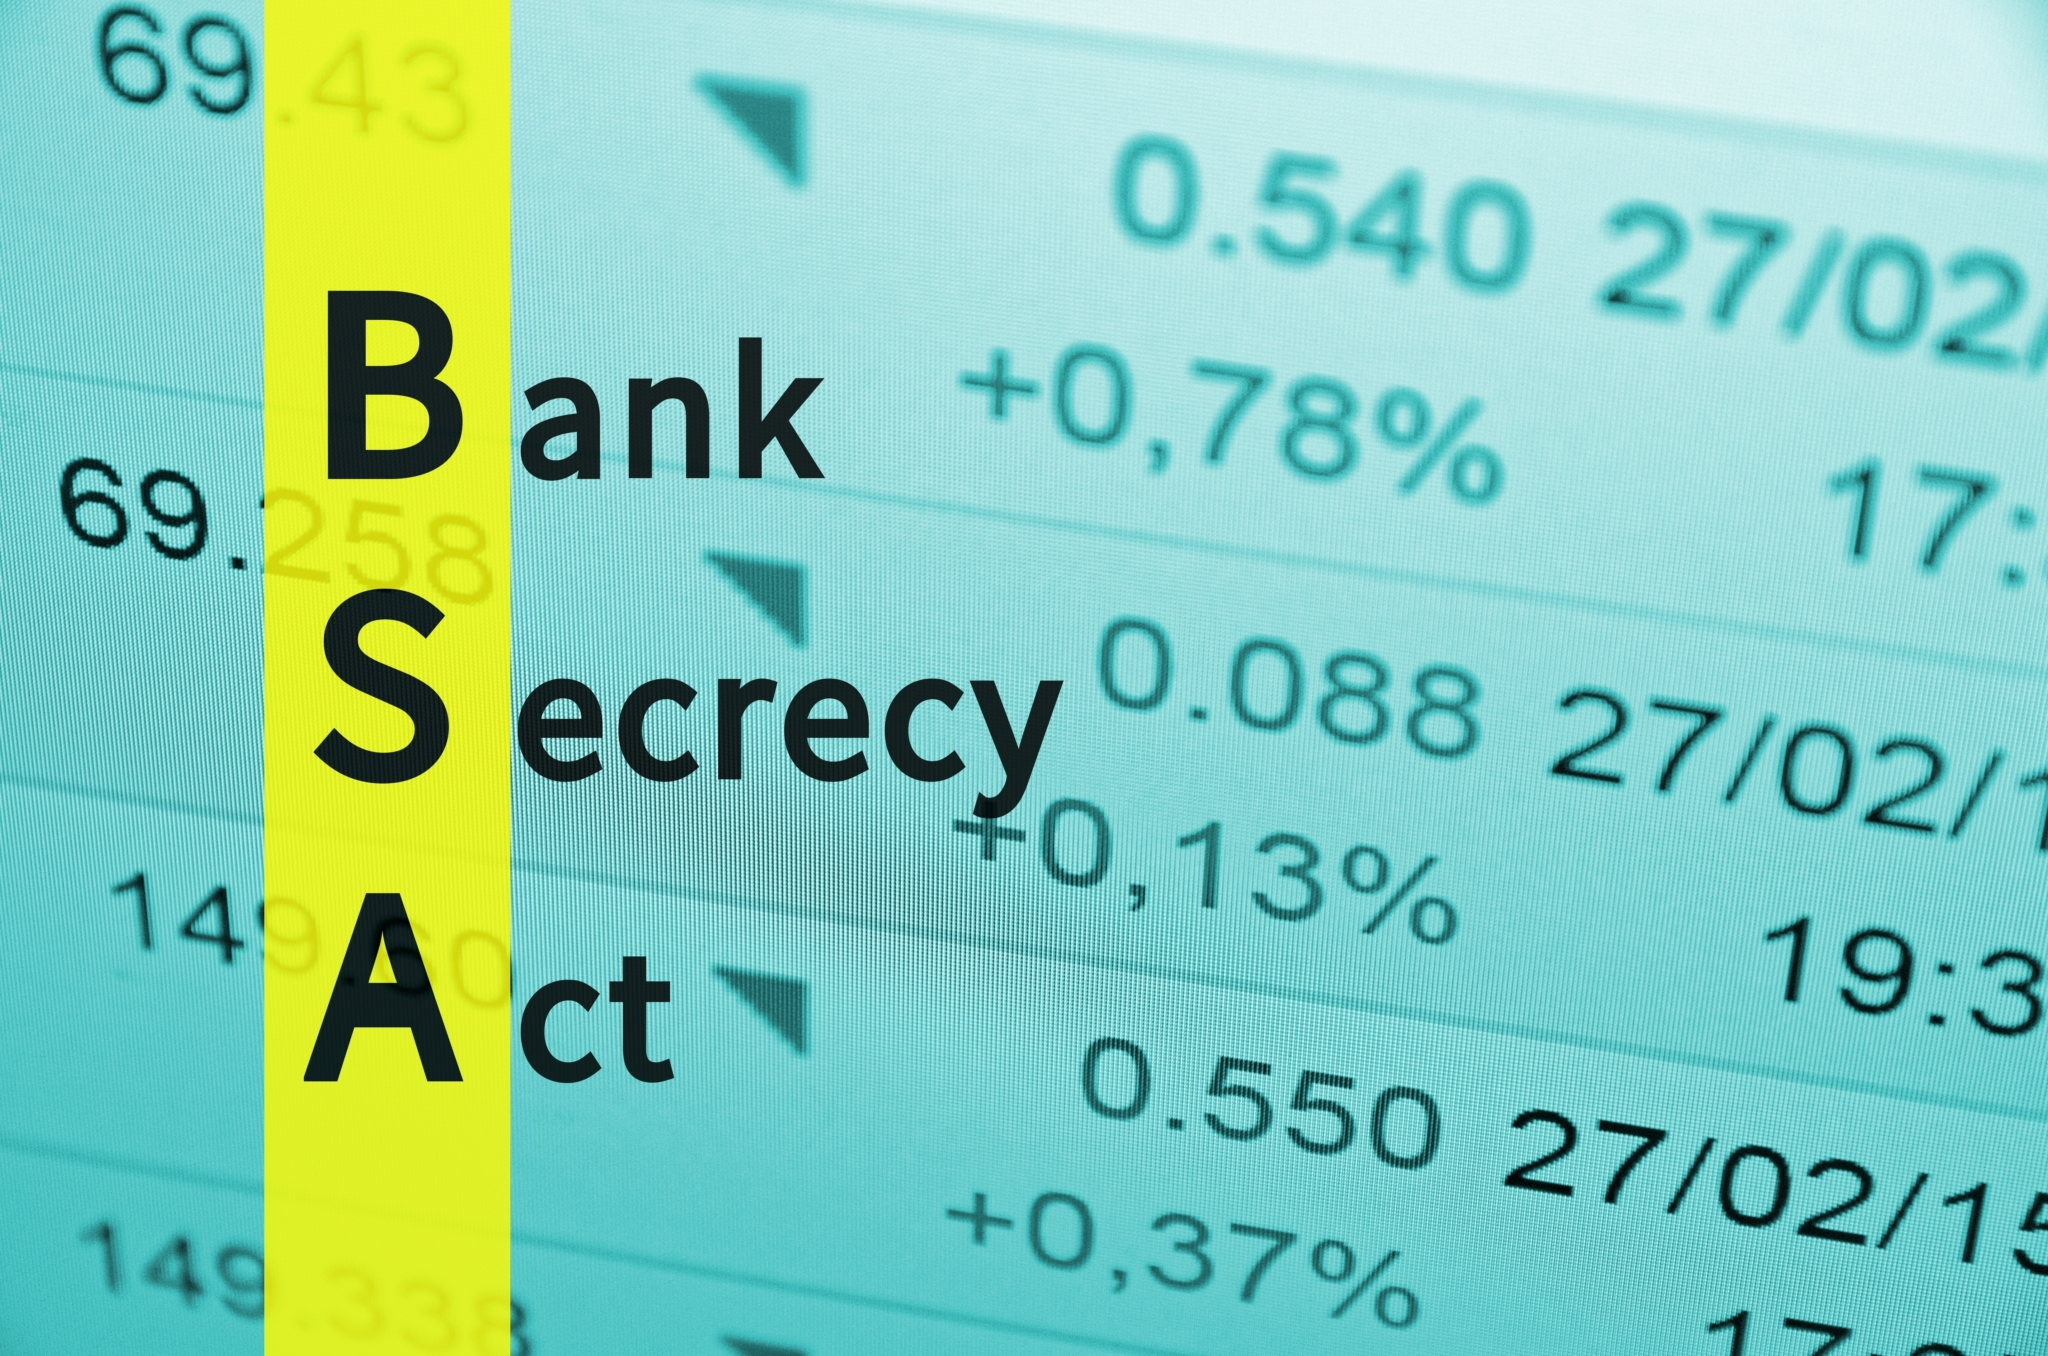 Bank Secrecy Act of 1970